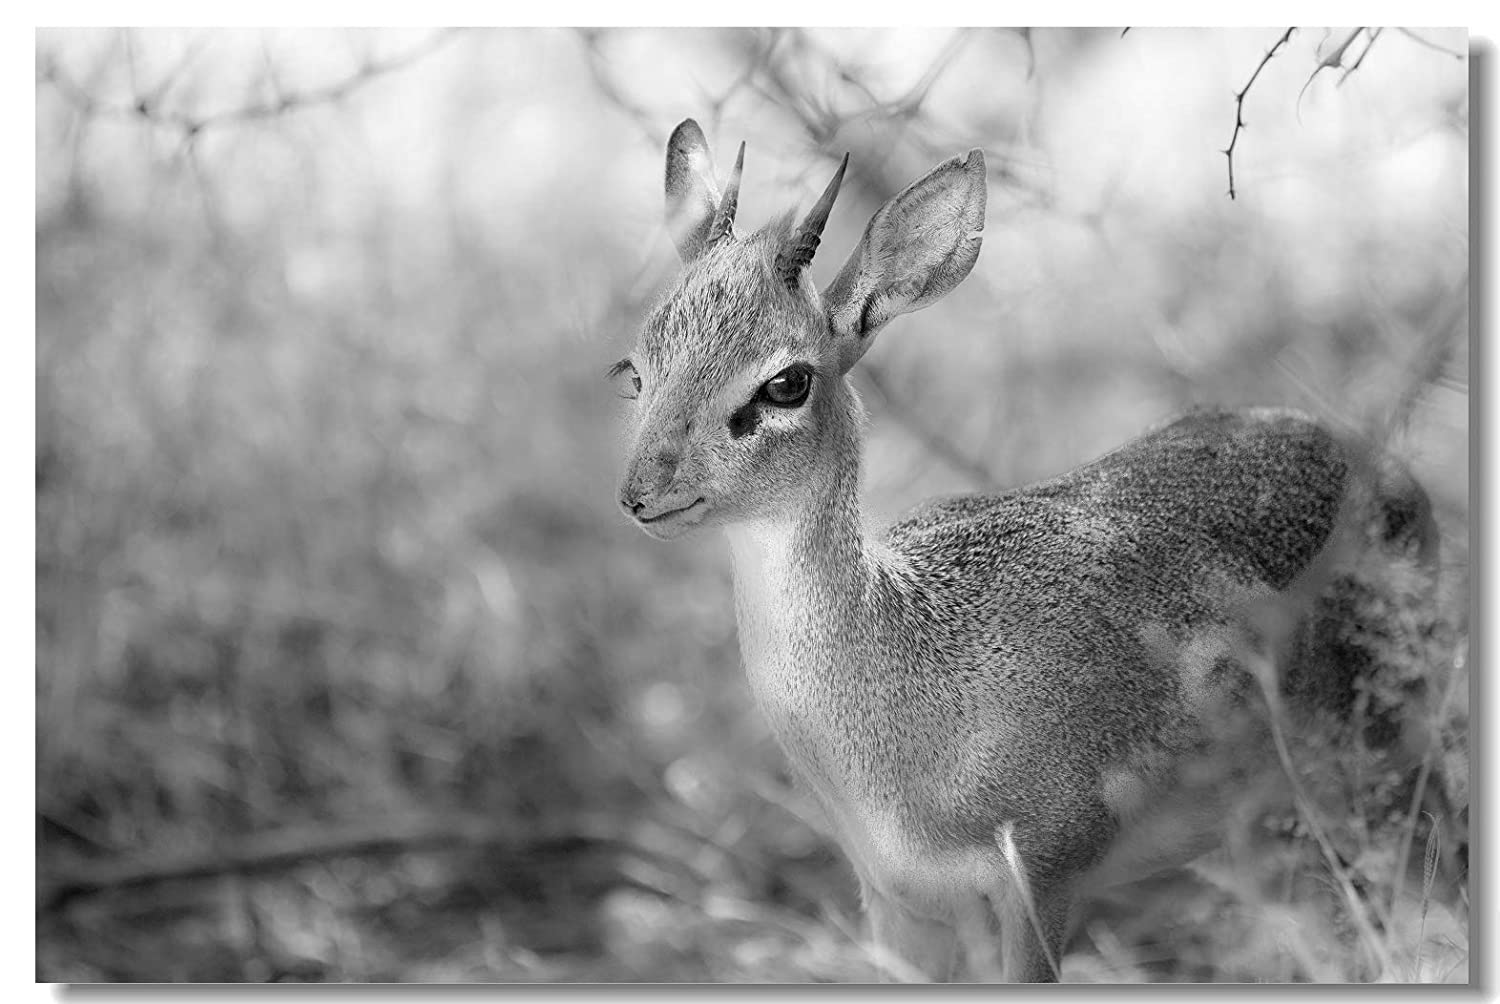 Poster damara dik dik deer in park black and white animal photo fabric prints for room wall 35 5x23 5inch 90x60cm 019